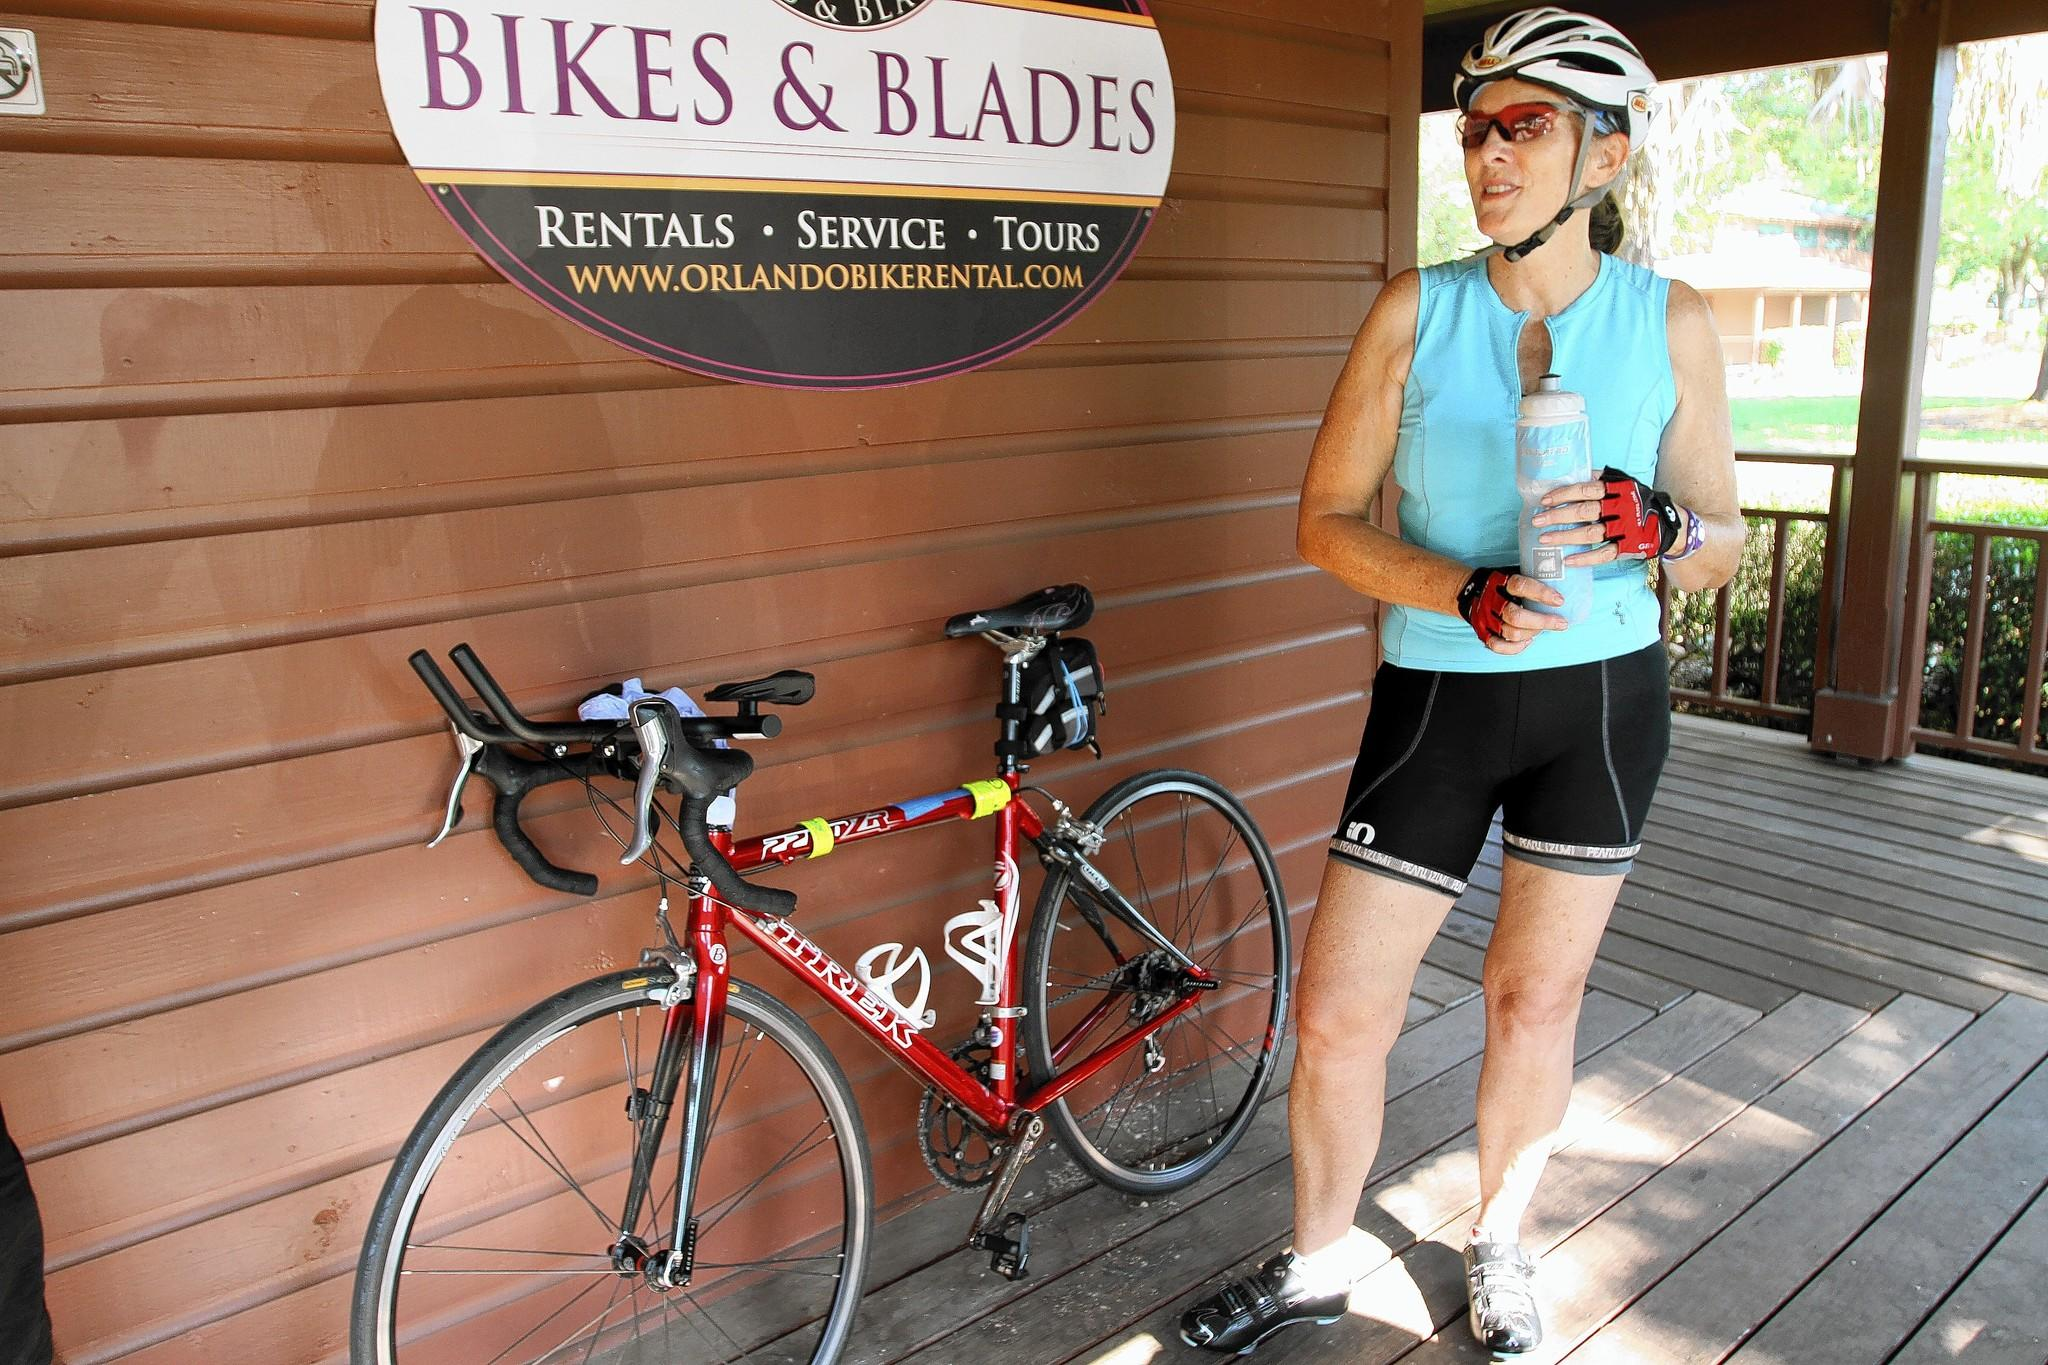 Jody Weiss takes a break during her 50-mile bike ride on the West Orange Trail.